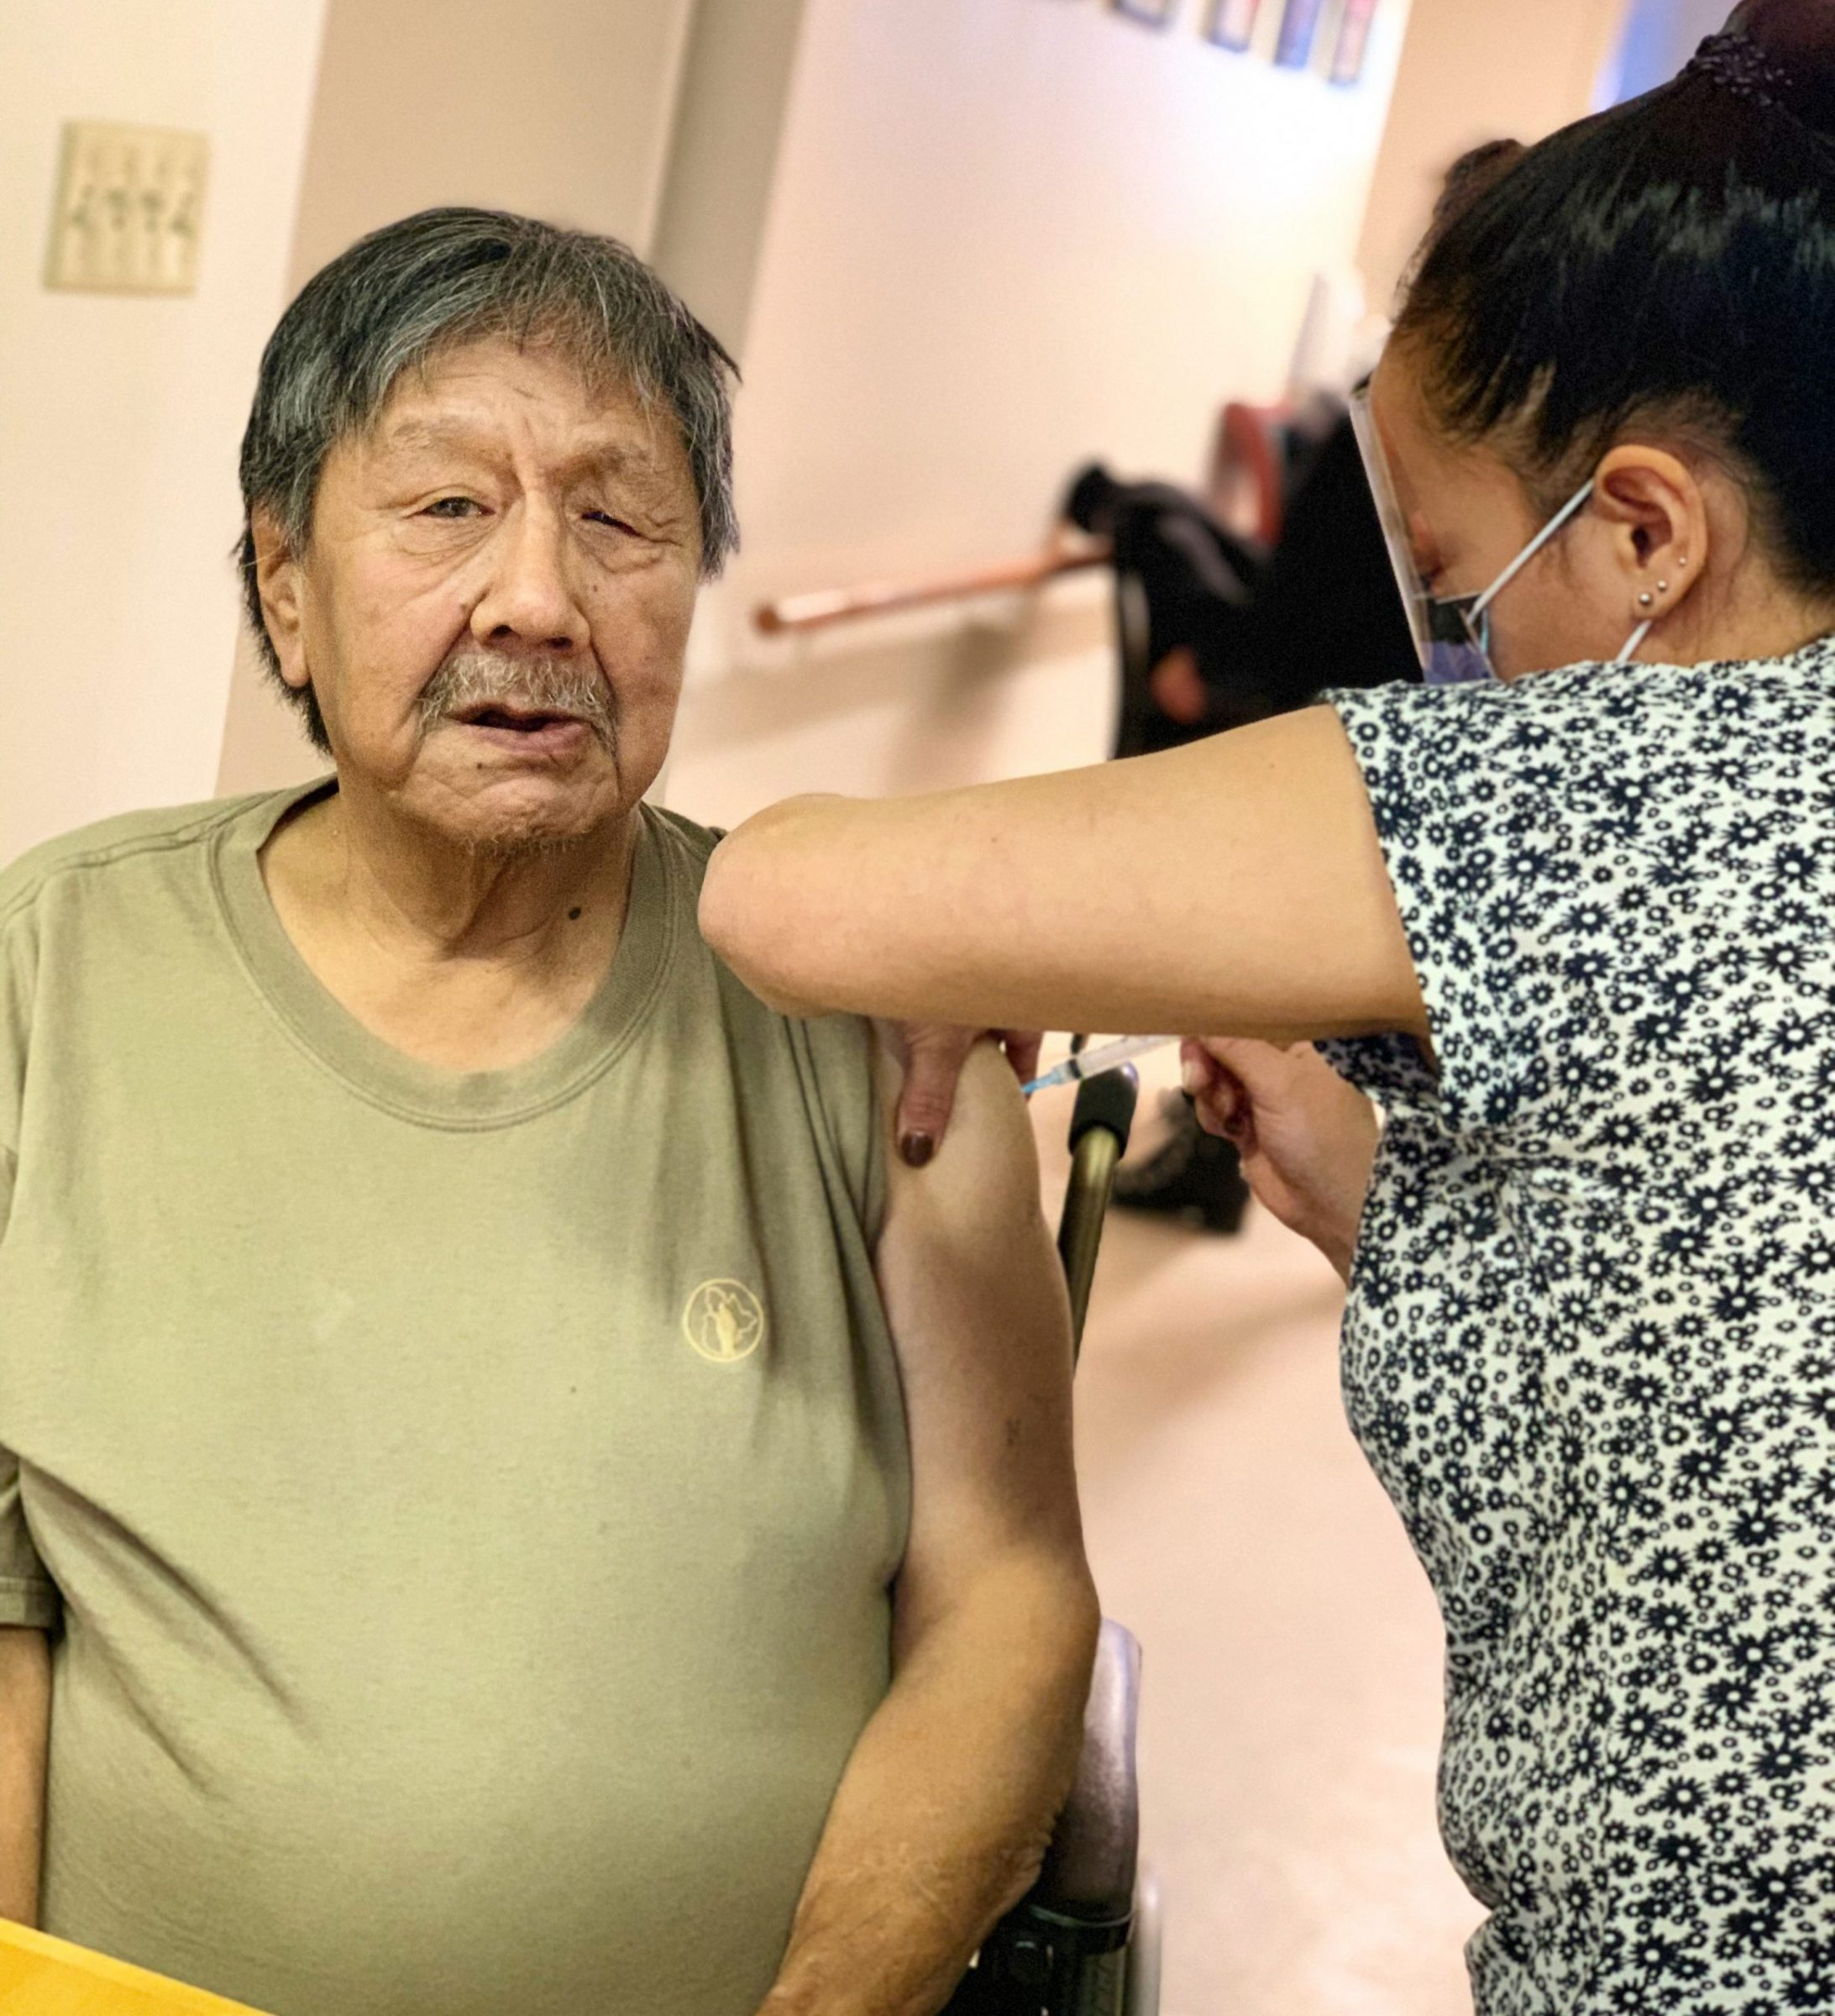 Josephee Adams, 70, is Nunavut's first recipient of a COVID-19 vaccine. Adams, a resident of the Iqaluit Elders' Centre, received the vaccine today from public health nurse Susie Pearce. (Image courtesy of the Government of Nunavut)